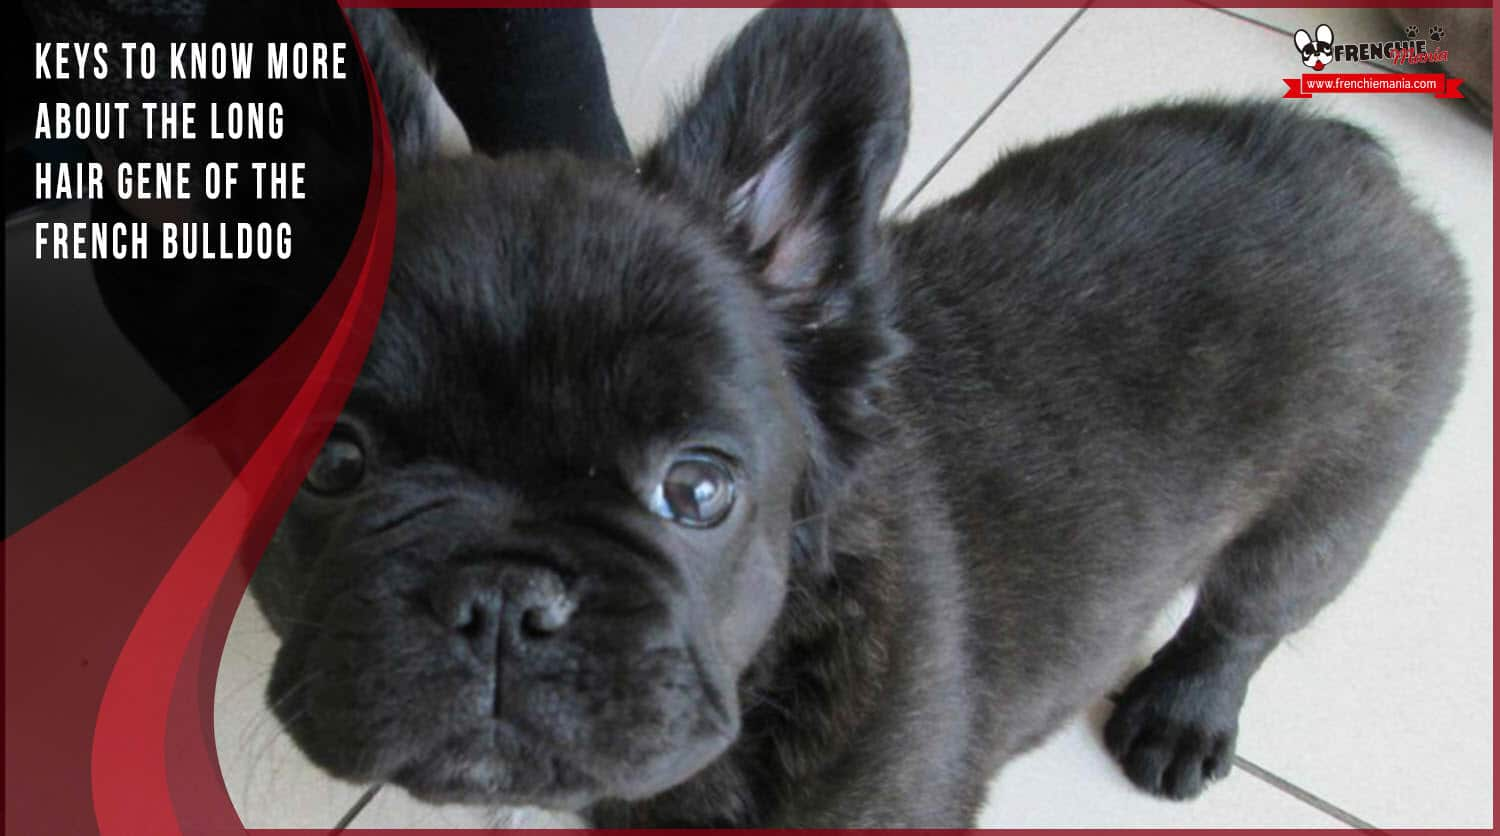 long haired french bulldog 4 keys of the long hair gen of the french bulldog 6190